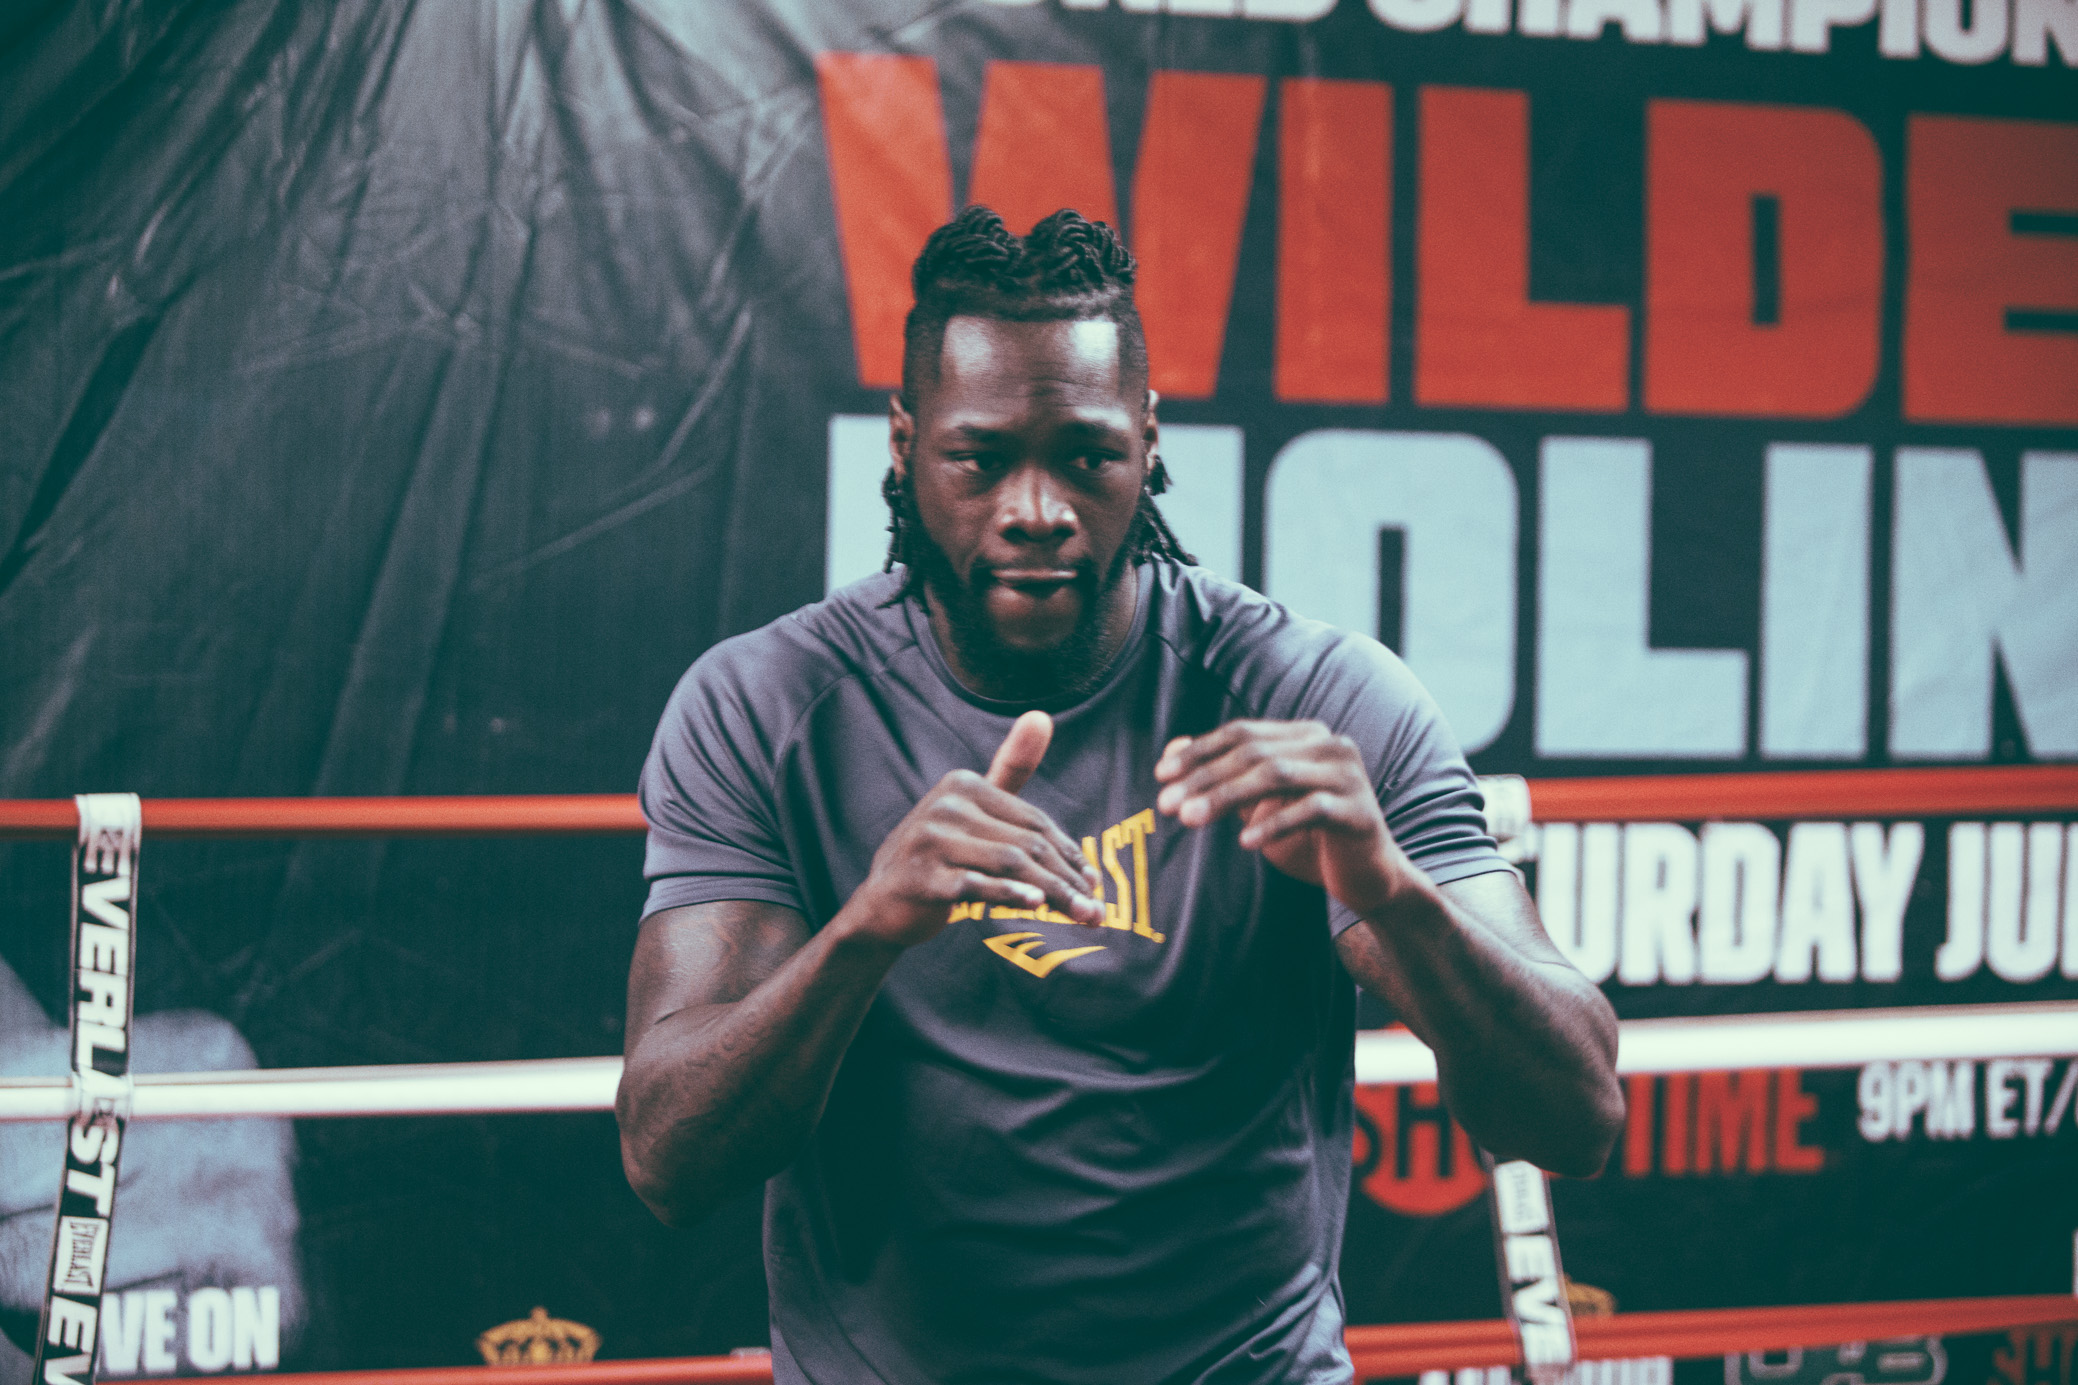 Deontay Wilder participates in a media workout at Skyy Boxing in Northport, Alabama on February 14th, 2017.   (Photo by David A. Smith/DSmithScenes)